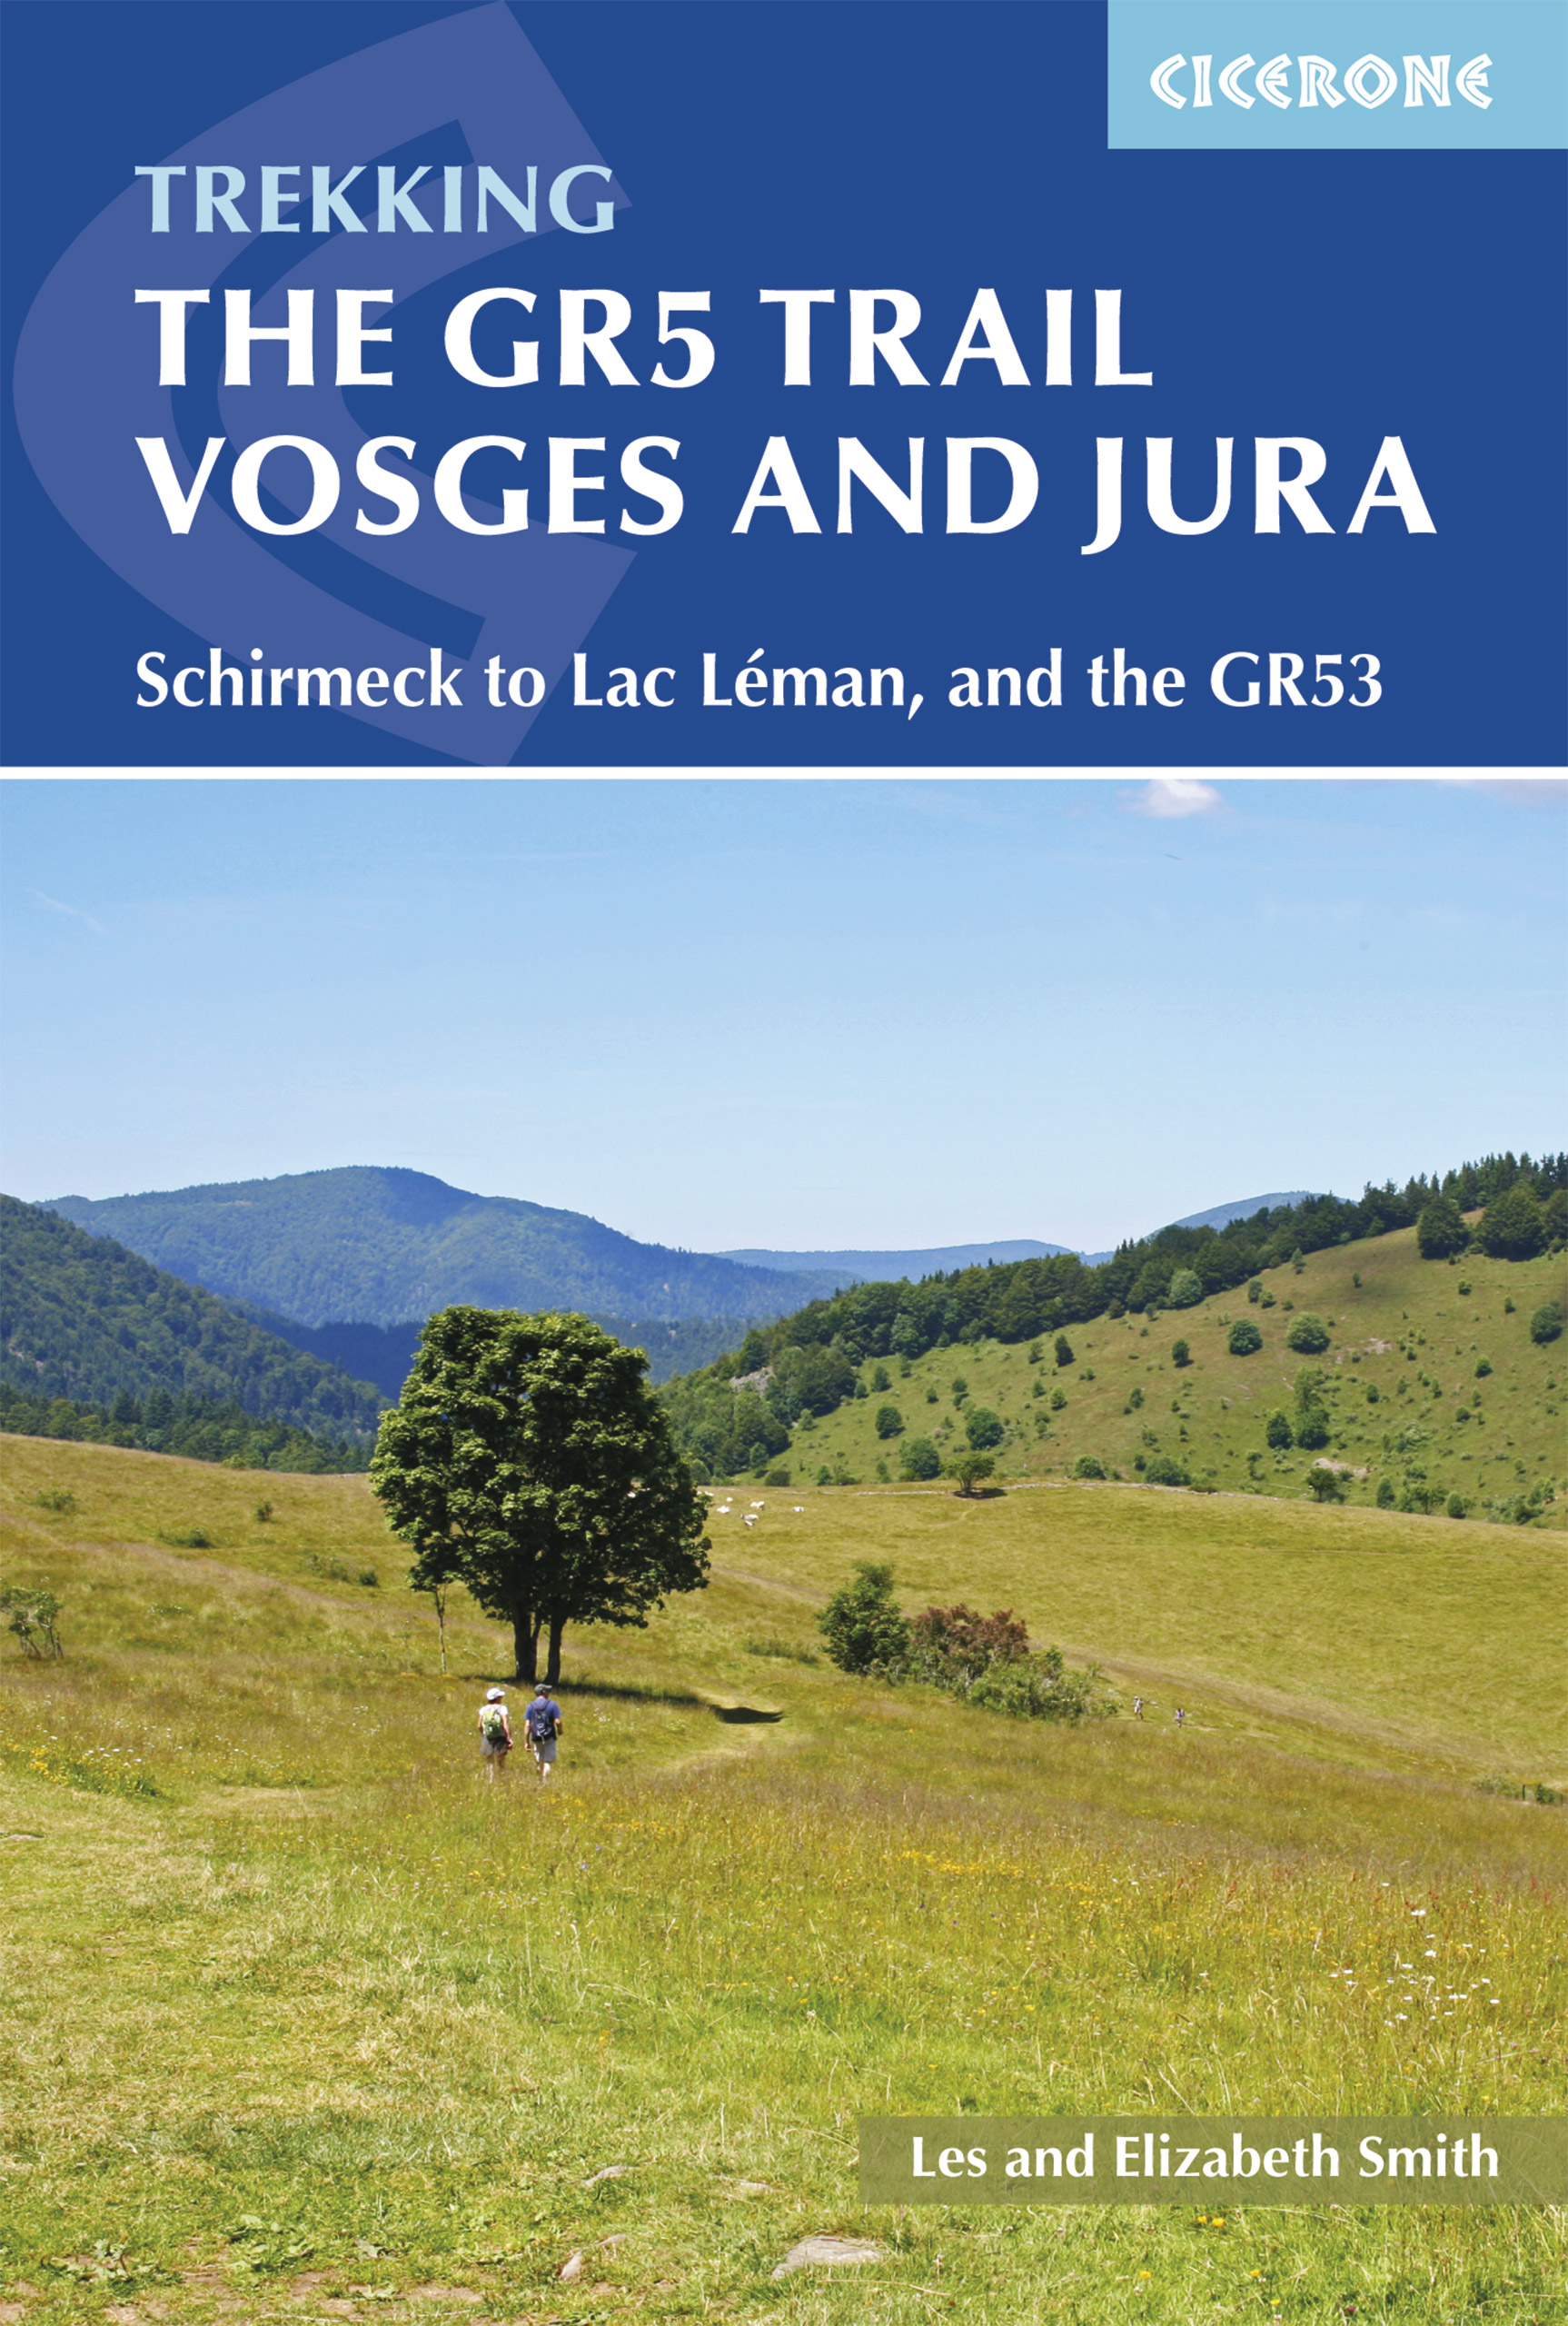 The GR5 Trail – Vosges and Jura